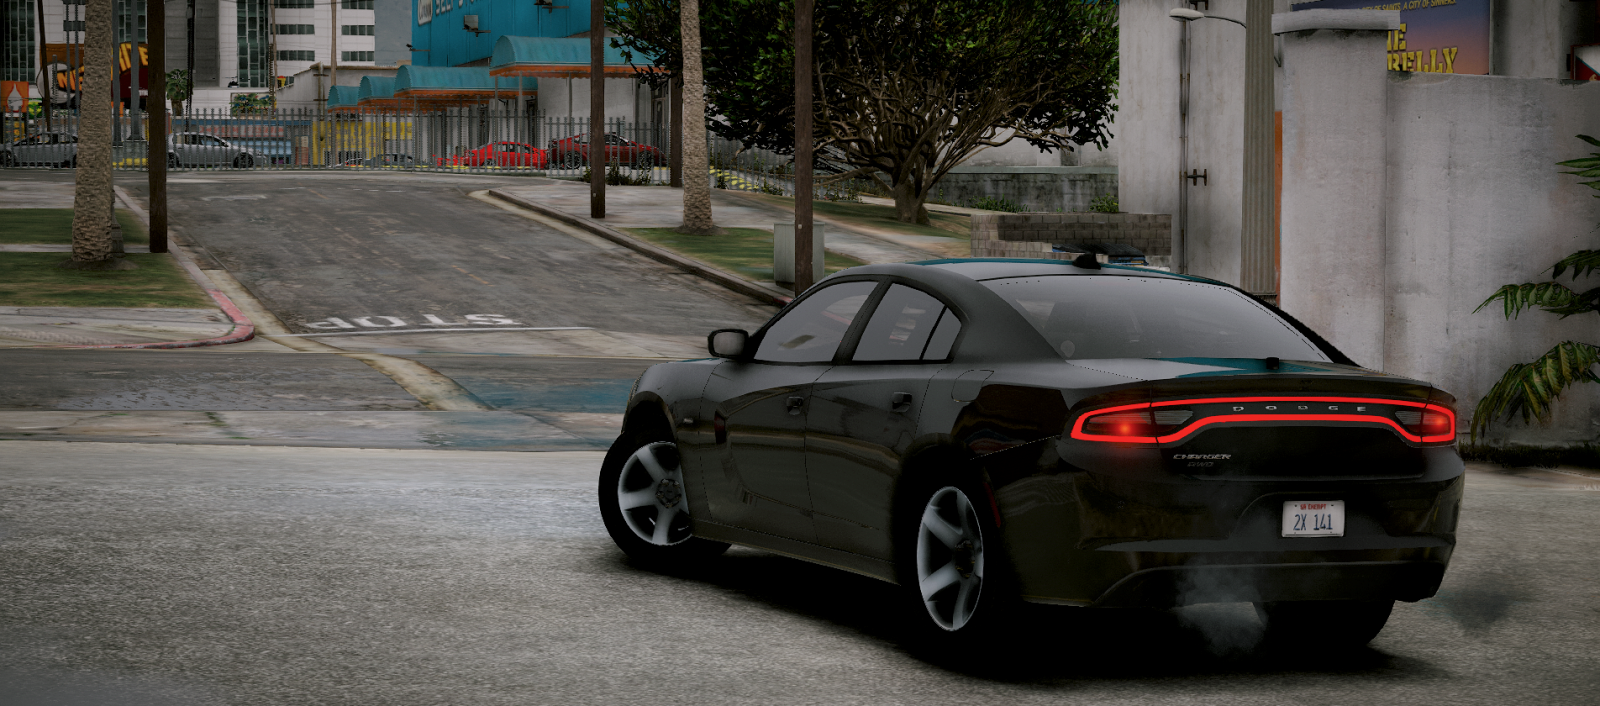 Black '16 Charger - Unmarked